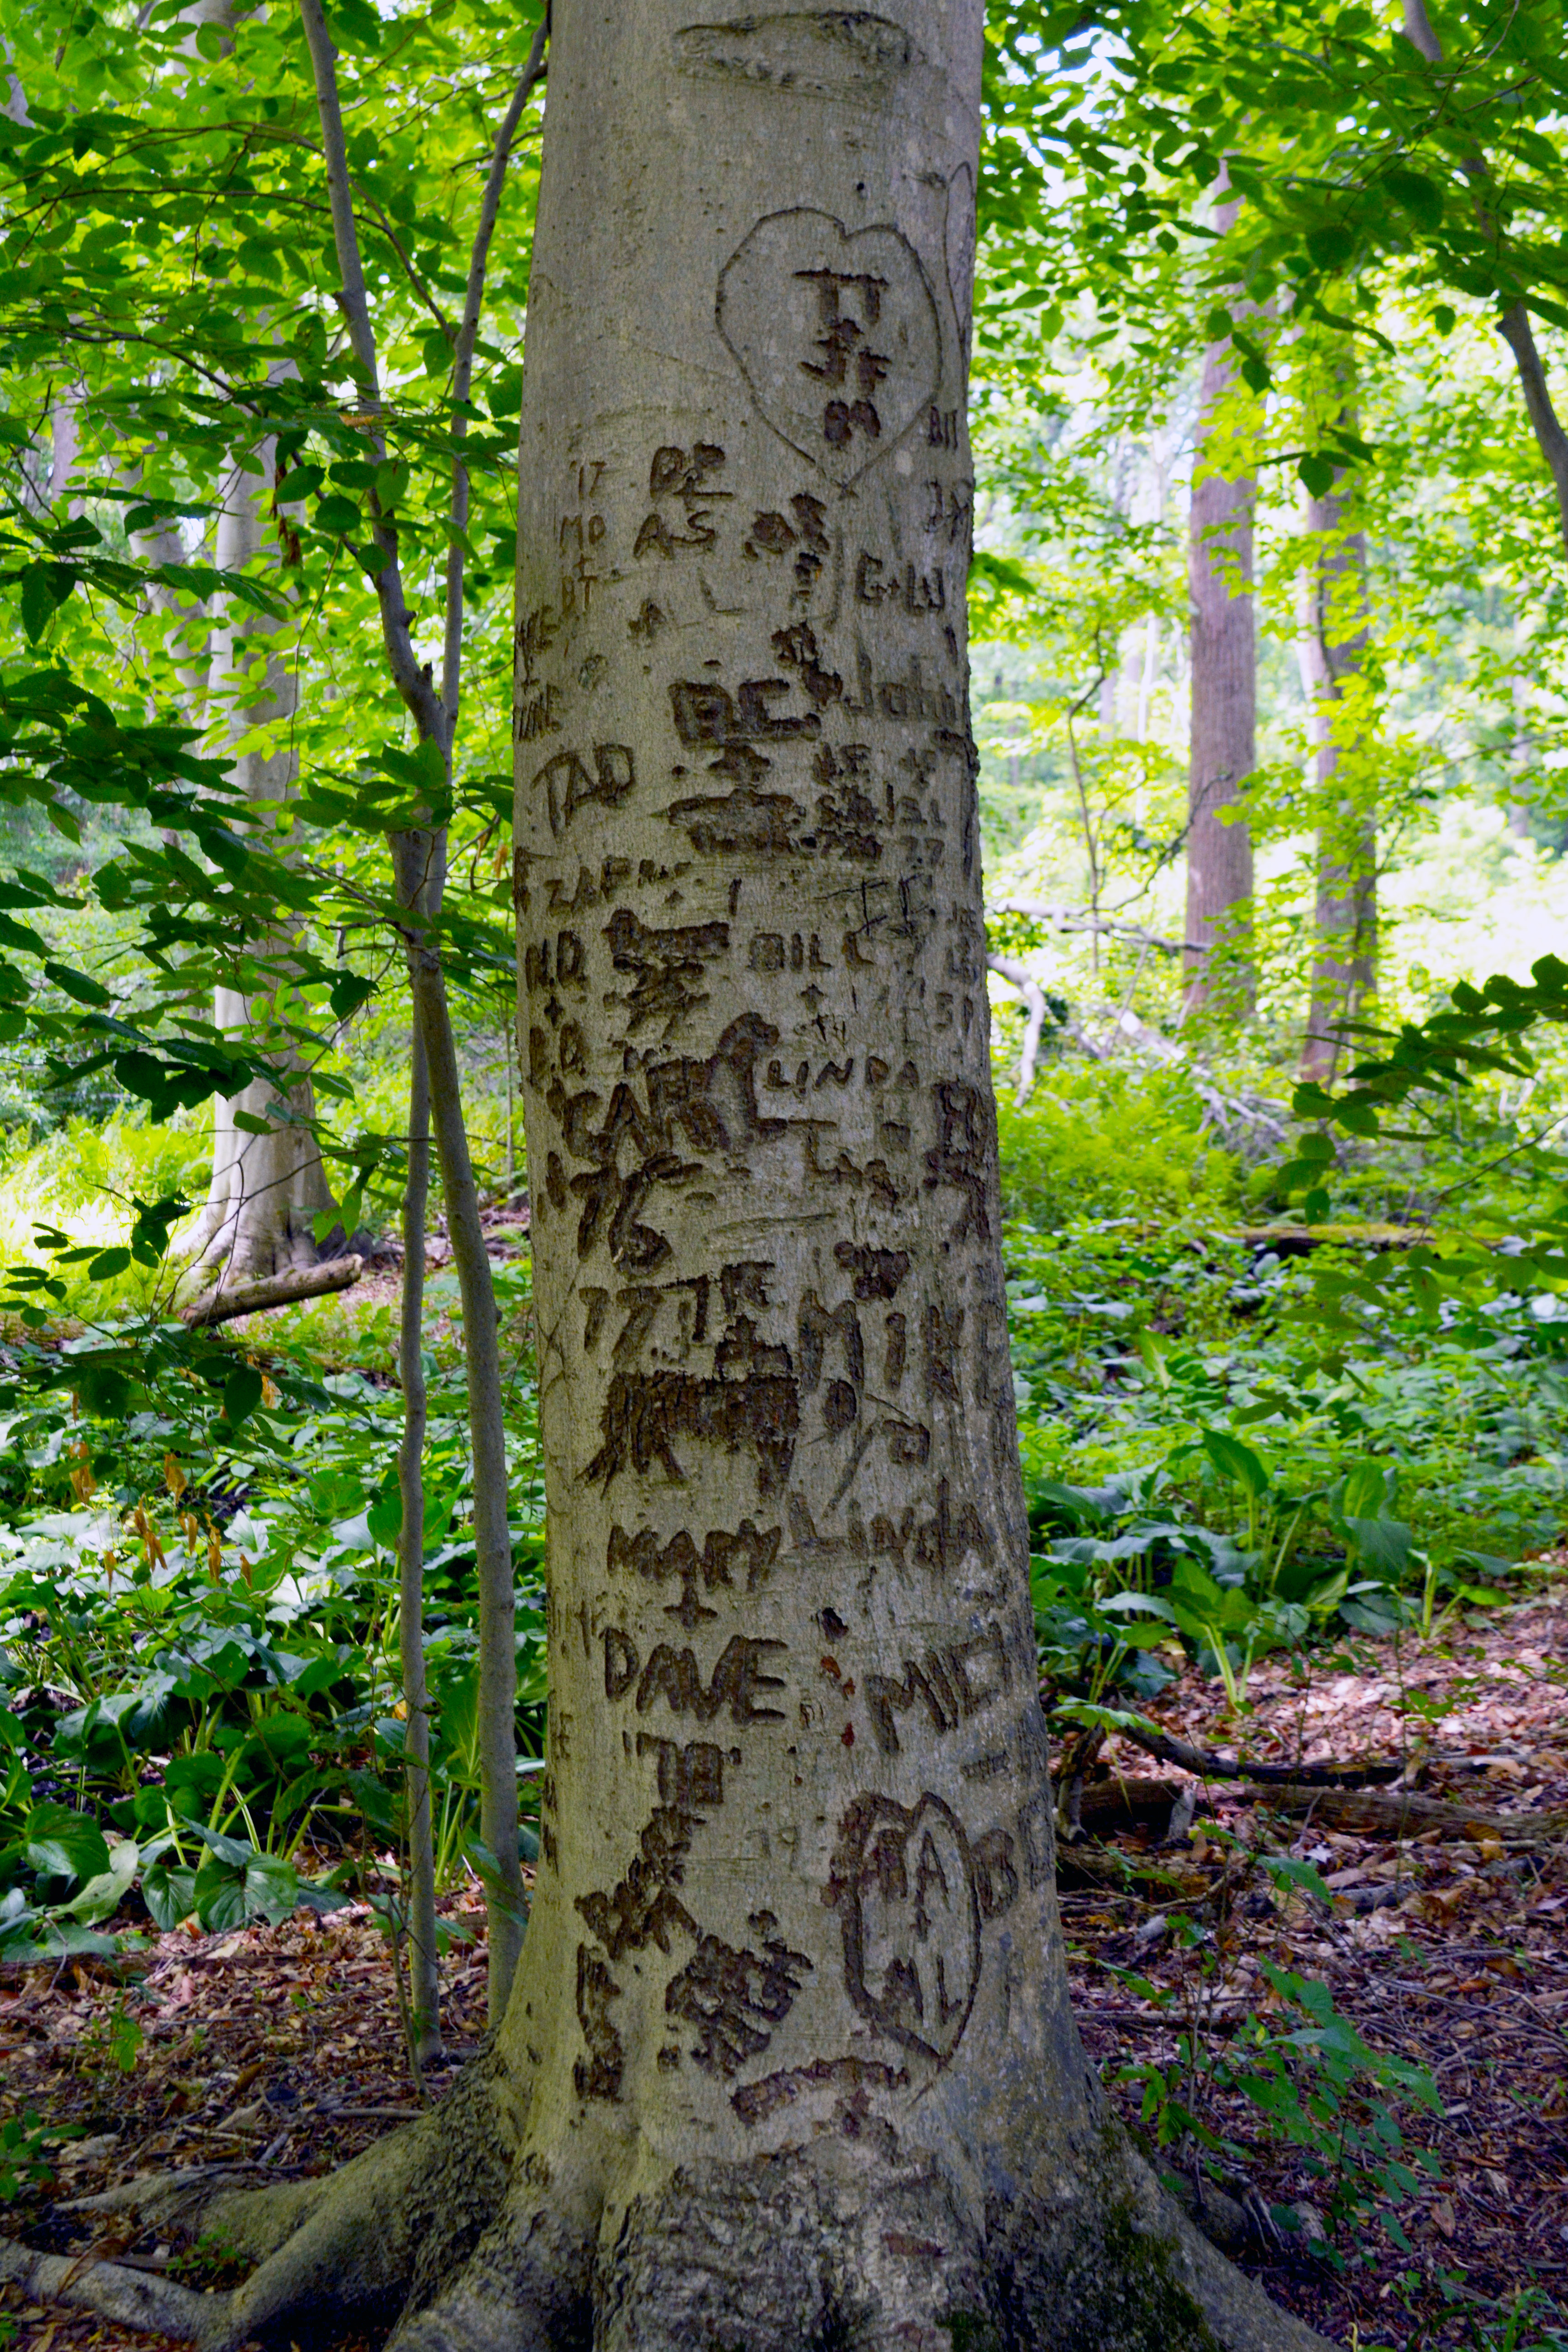 Tree with names carved into it